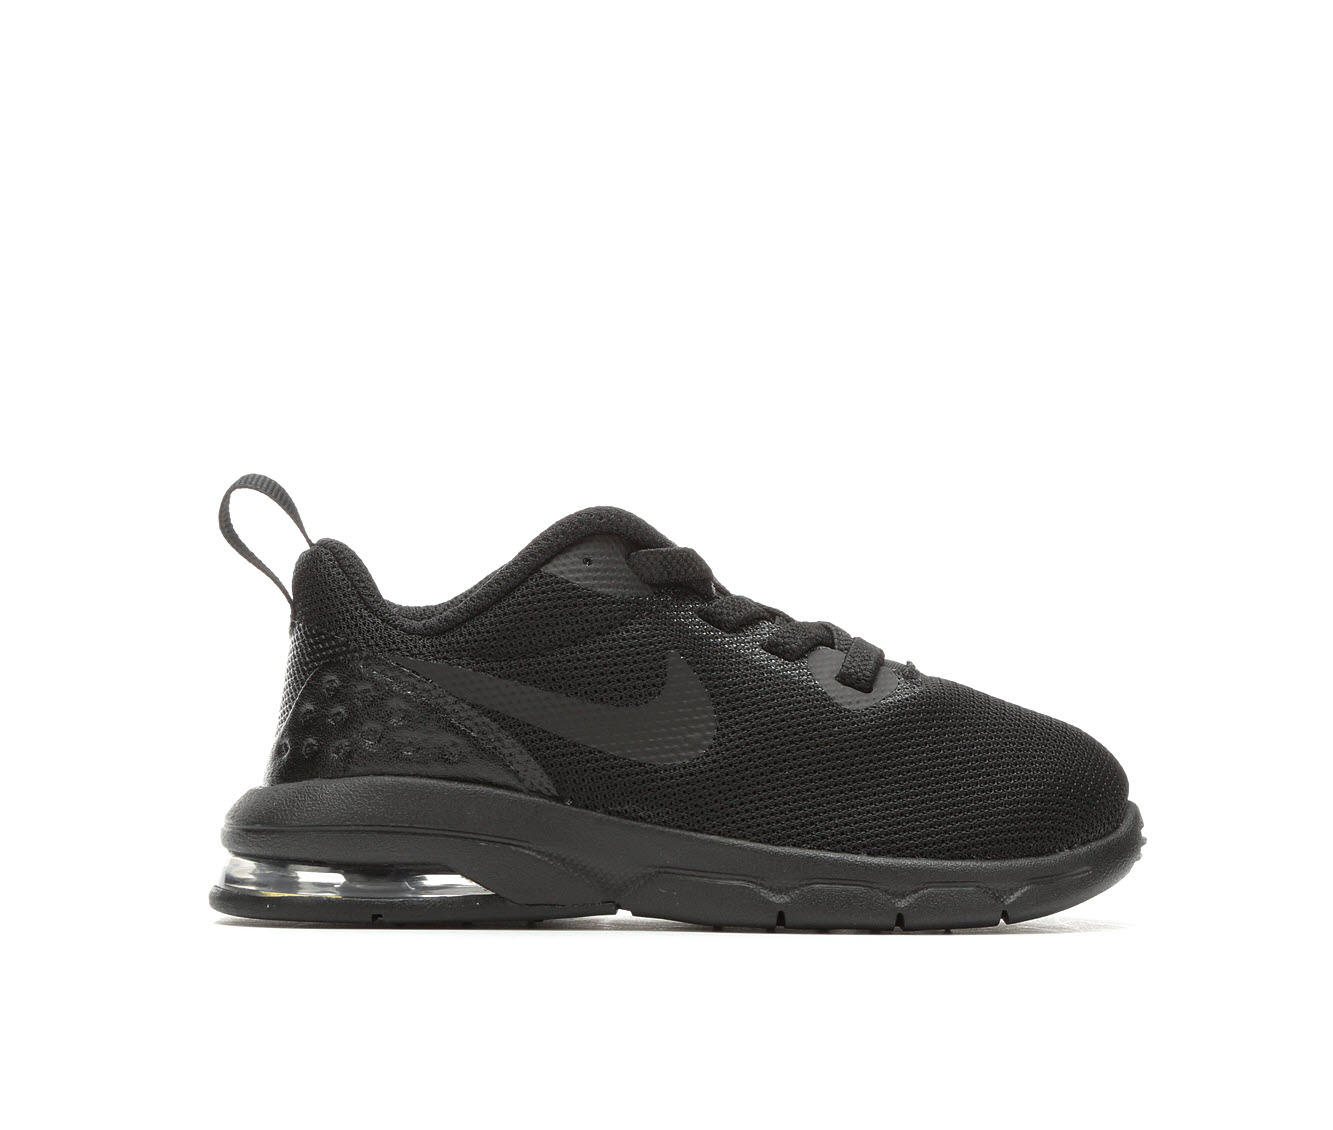 Boys' Nike Infant Air Max Motion Low Sneakers (Black)